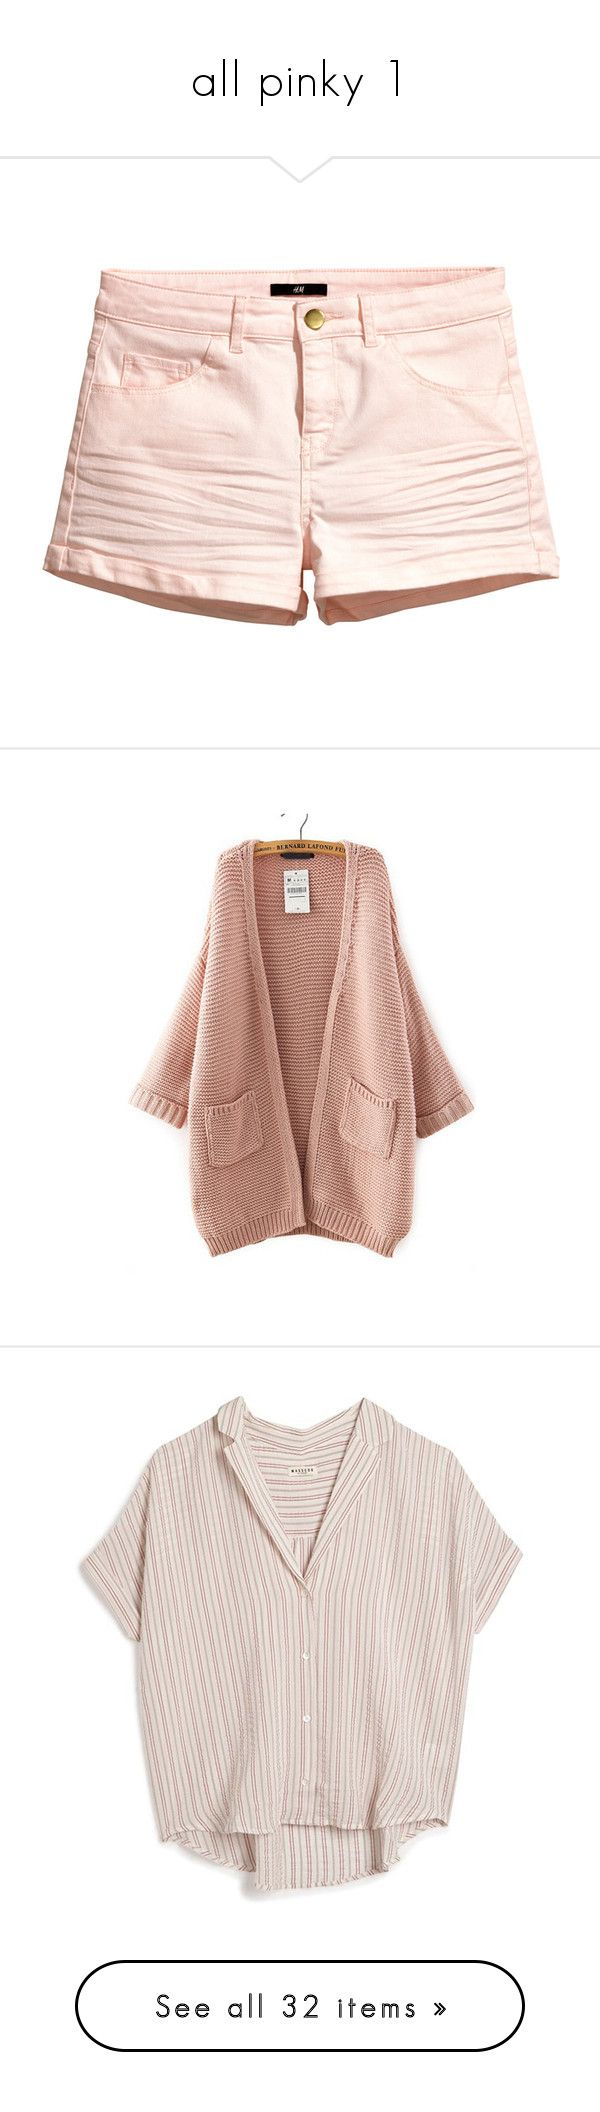 """""""all pinky 1"""" by sarabutterfly ❤ liked on Polyvore featuring shorts, light pink, slim fit shorts, light pink shorts, twill shorts, short shorts, h&m shorts, tops, cardigans and outerwear"""